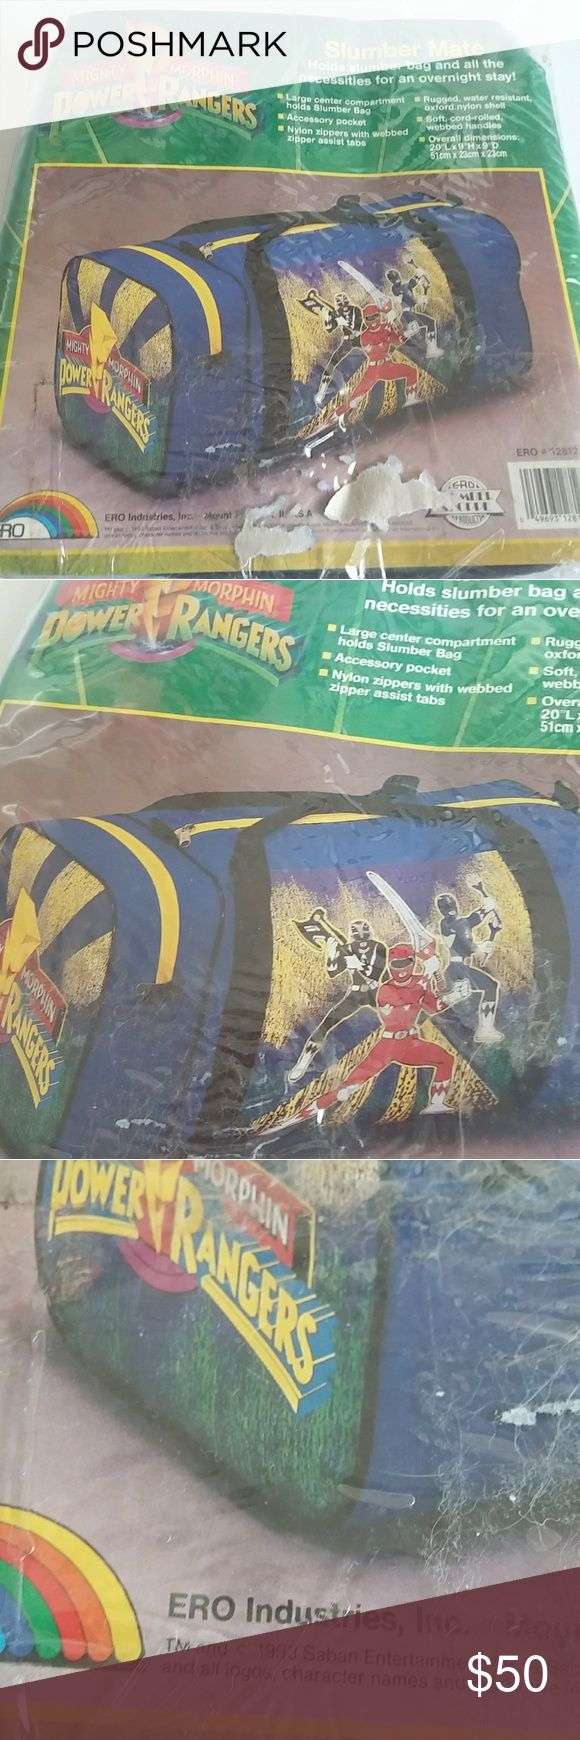 1993 Vtg Mighty Morphin Power Rangers Duffel Bag Officially licensed by SABAN Entertianment circa 1993, this power ranger bag screams 90s fashion accesories. Bag still in plastic. Good for gym bag use or carry on for flights. Go go power rangers! ERO Industries, Inc Accessories Bags